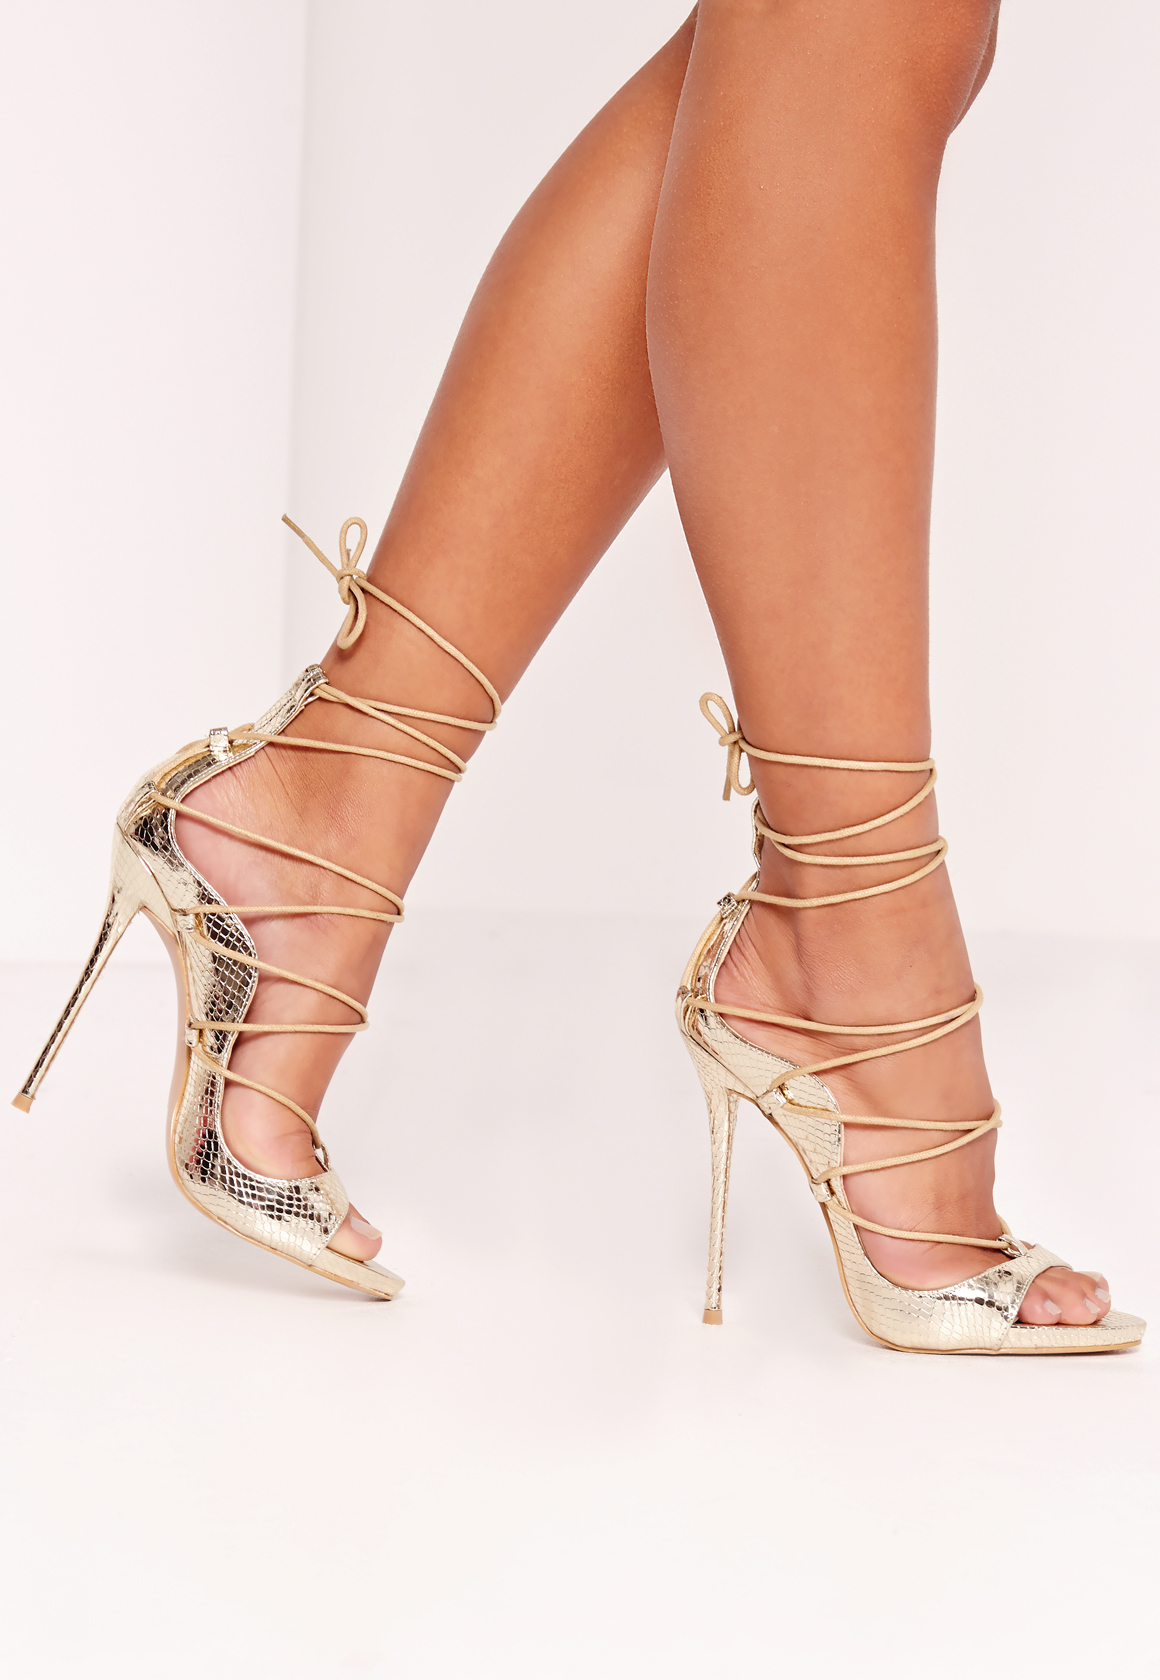 Missguided Reptile Lace Up Heeled Sandals Gold In Metallic